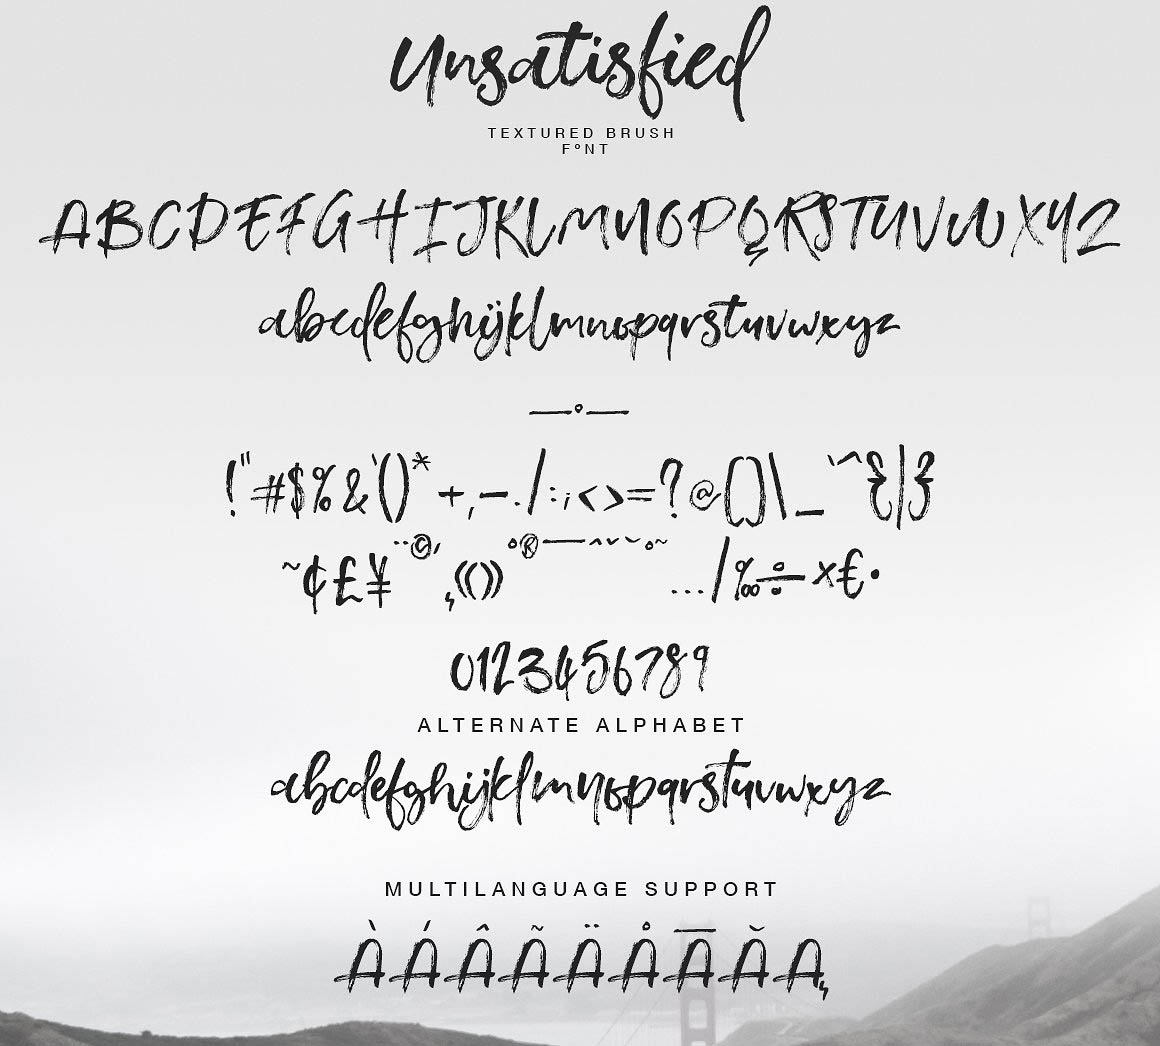 Unsatisfied3